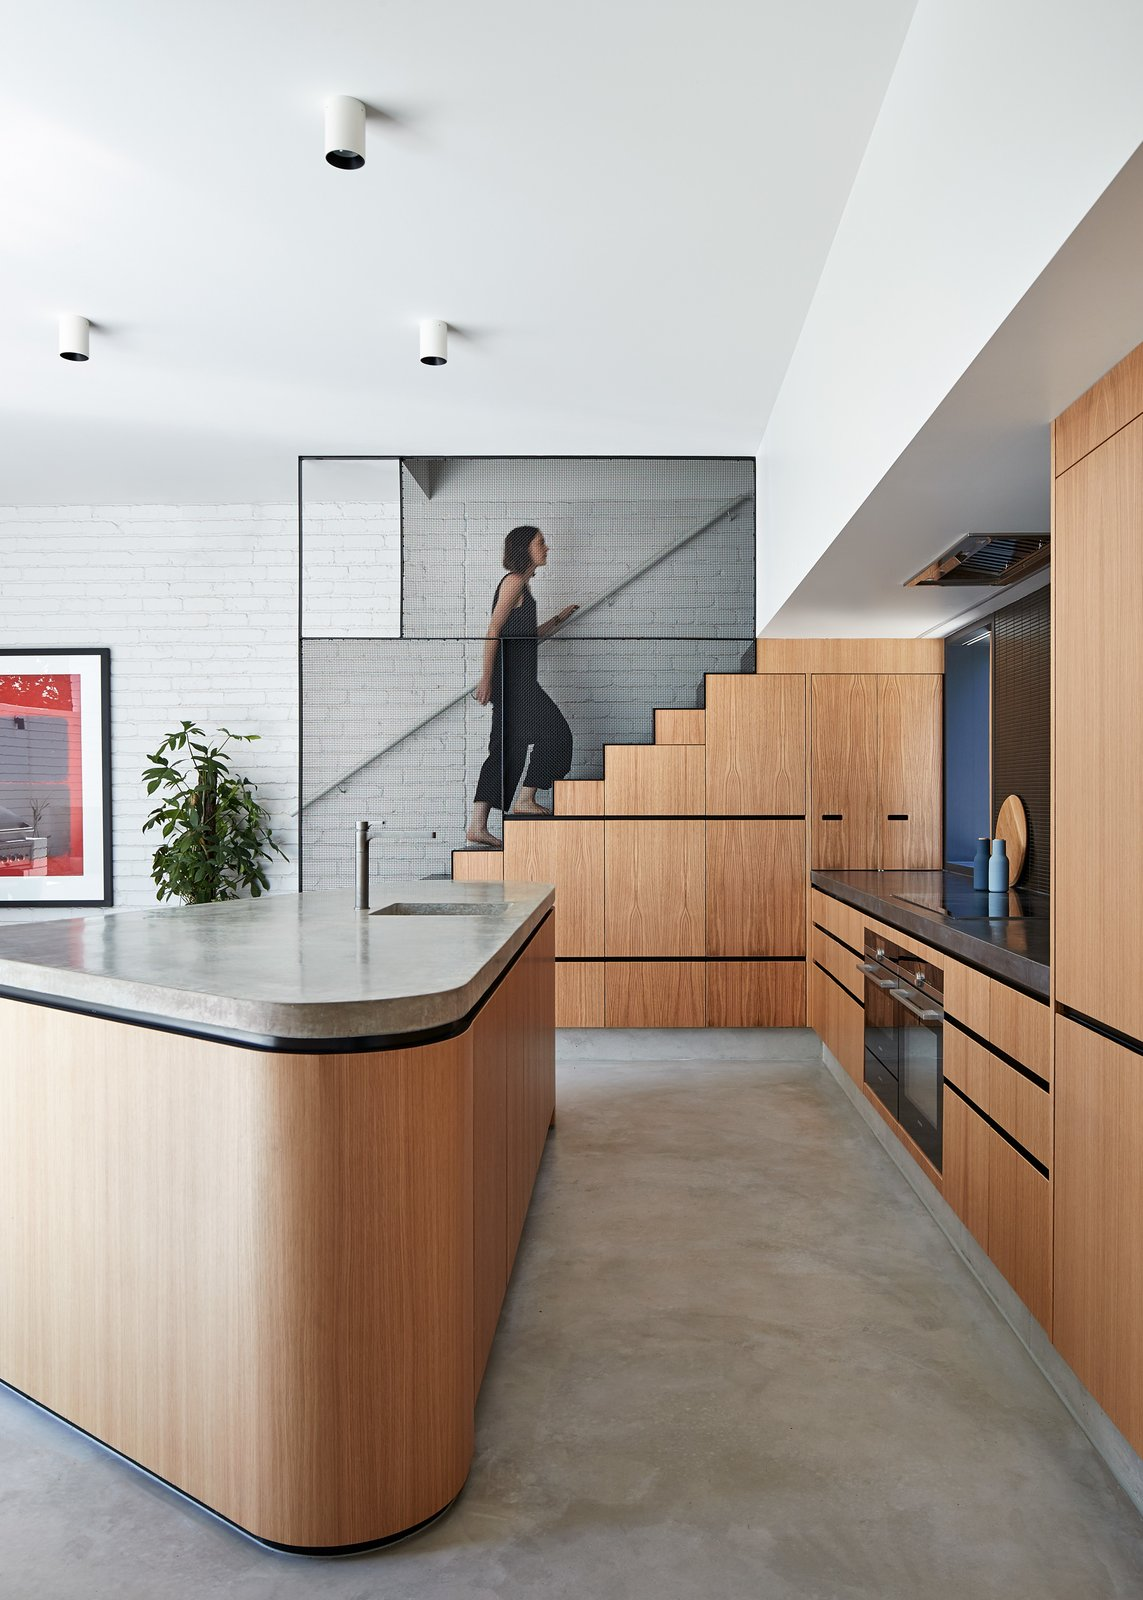 Kitchen, Concrete, Cooktops, Concrete, Refrigerator, Wood, Range Hood, Wall Oven, Ceiling, Concrete, and Undermount A steel mesh balustrade lines the stairway, which leads to the rooftop deck.  Best Kitchen Concrete Cooktops Ceiling Wall Oven Photos